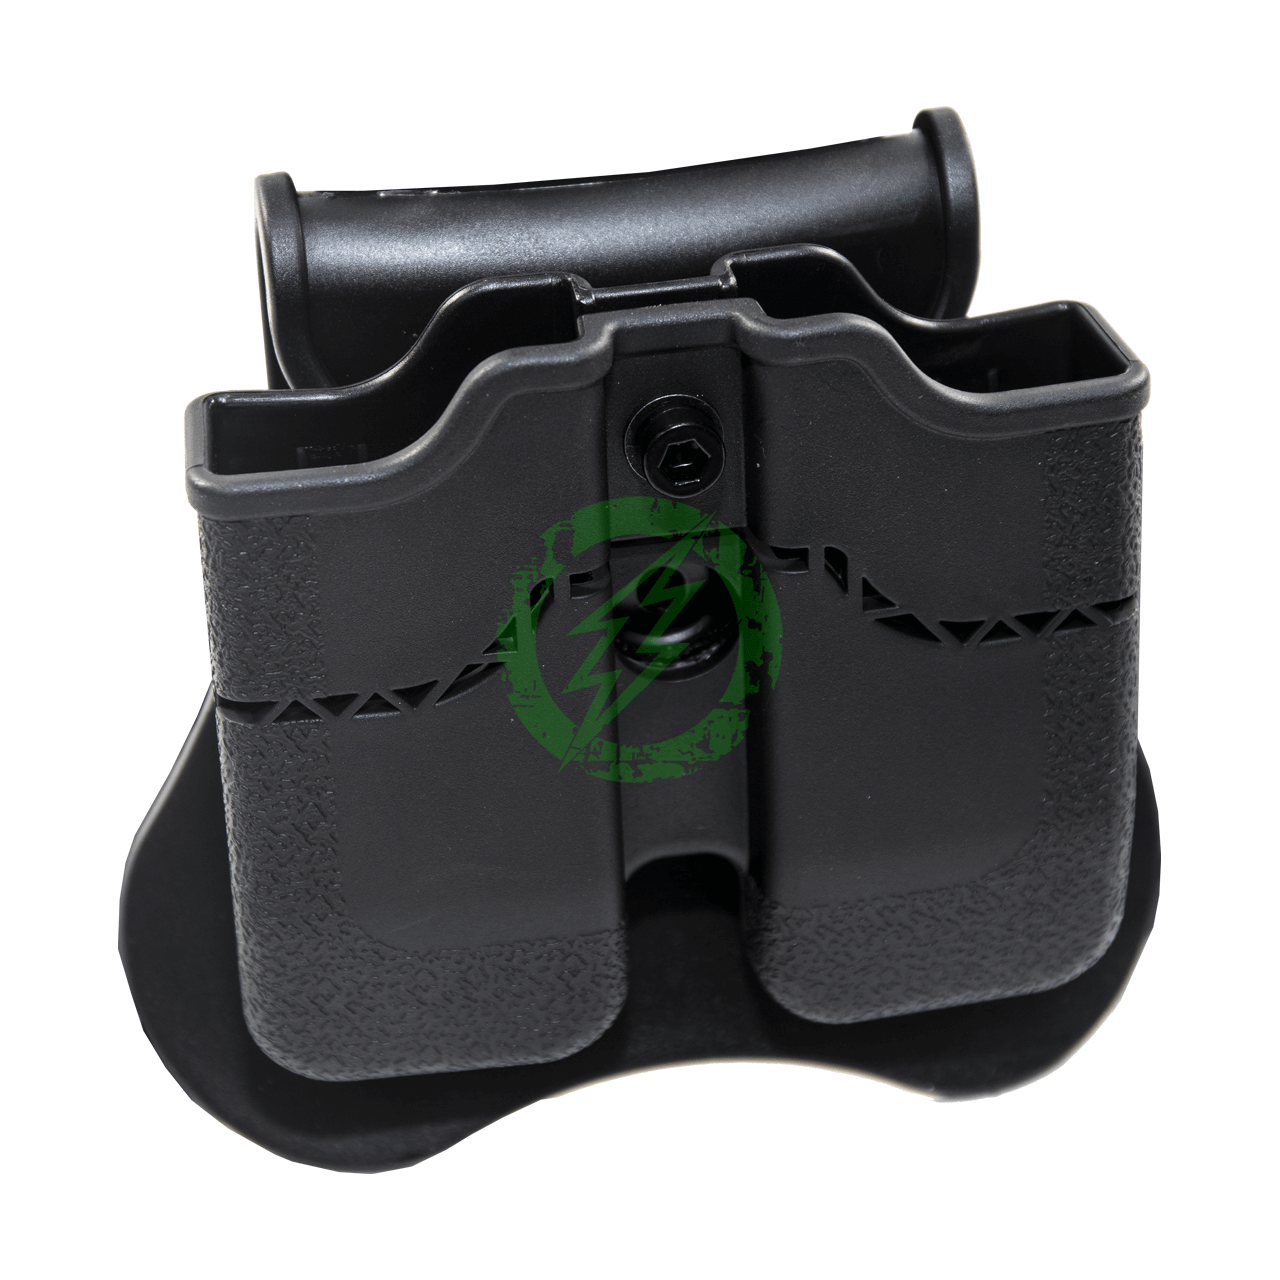 Cytac Amomax 1911 Single Stack Pistol Mag Pouch